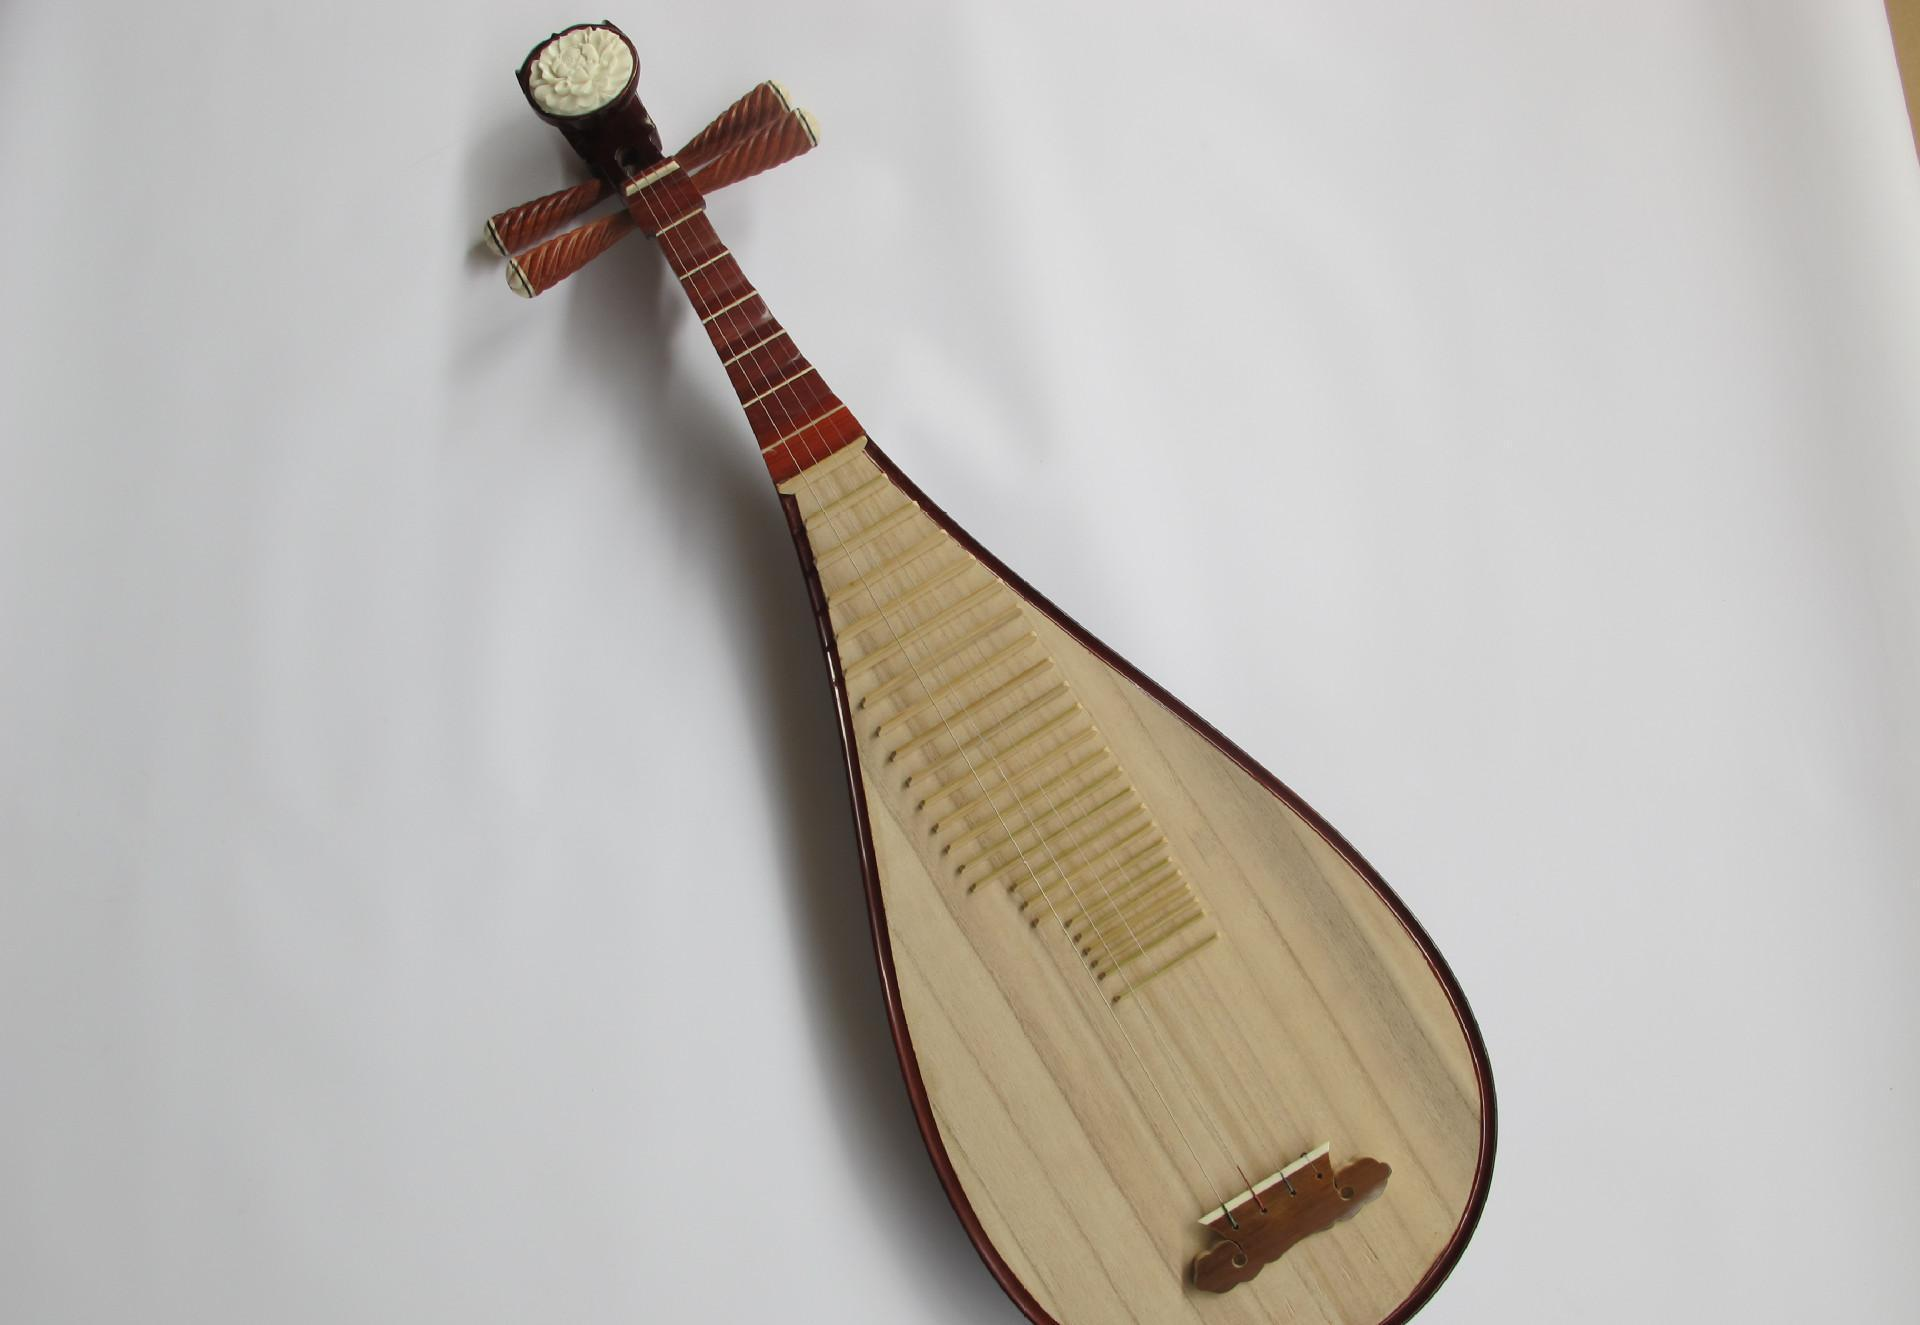 Lute introduction